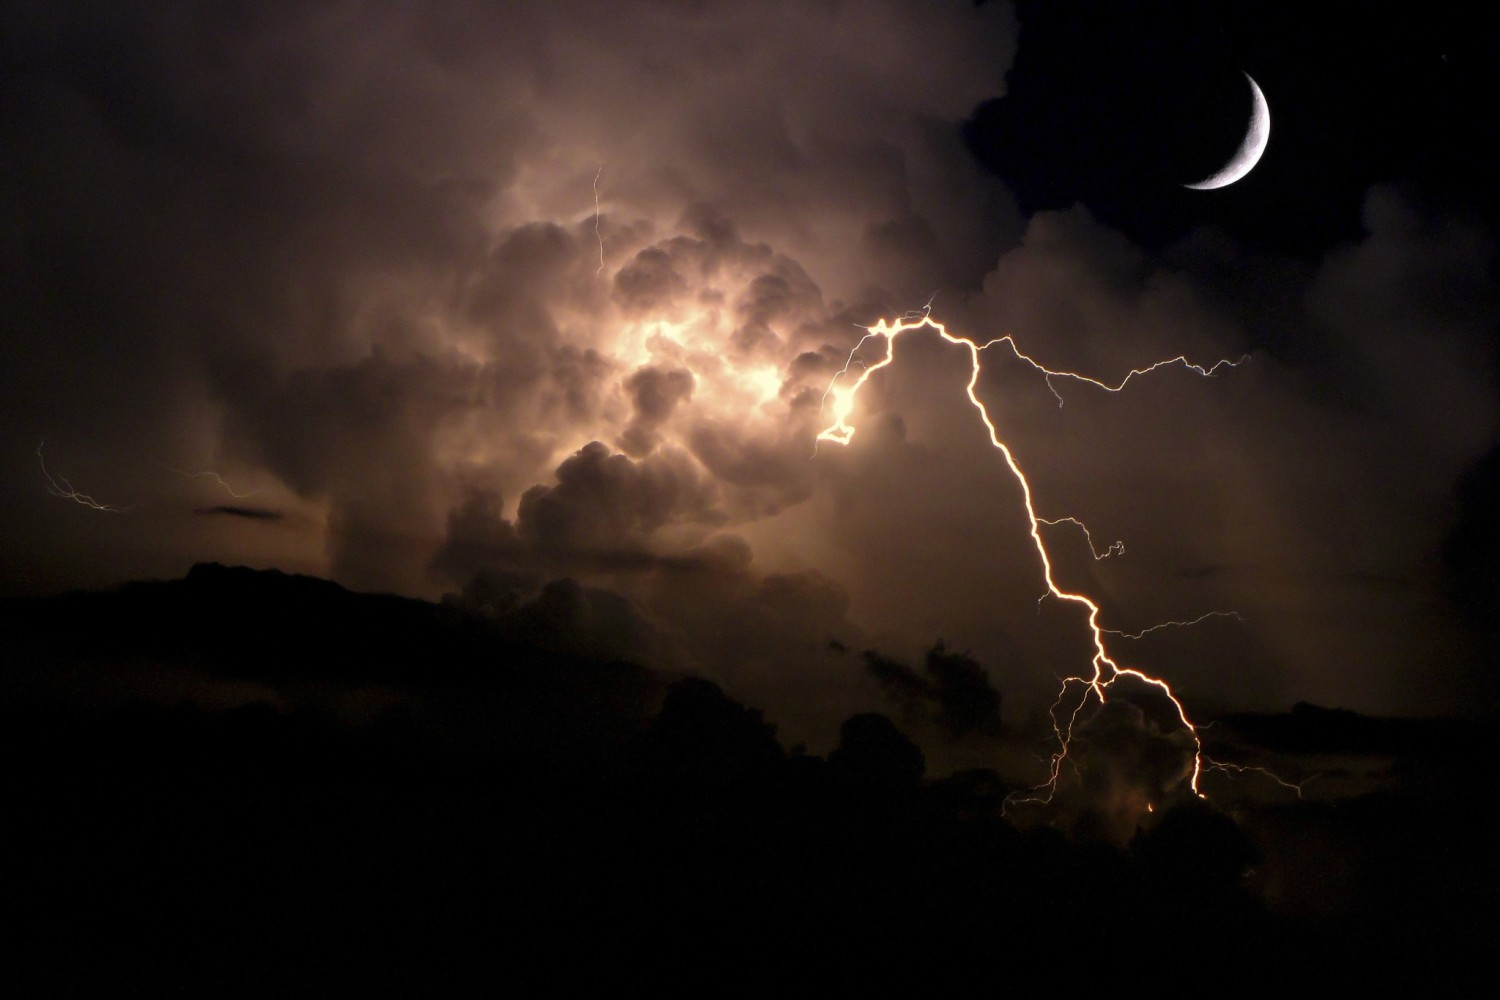 Tutorial: A Beginner's Guide to Photographing Lightning